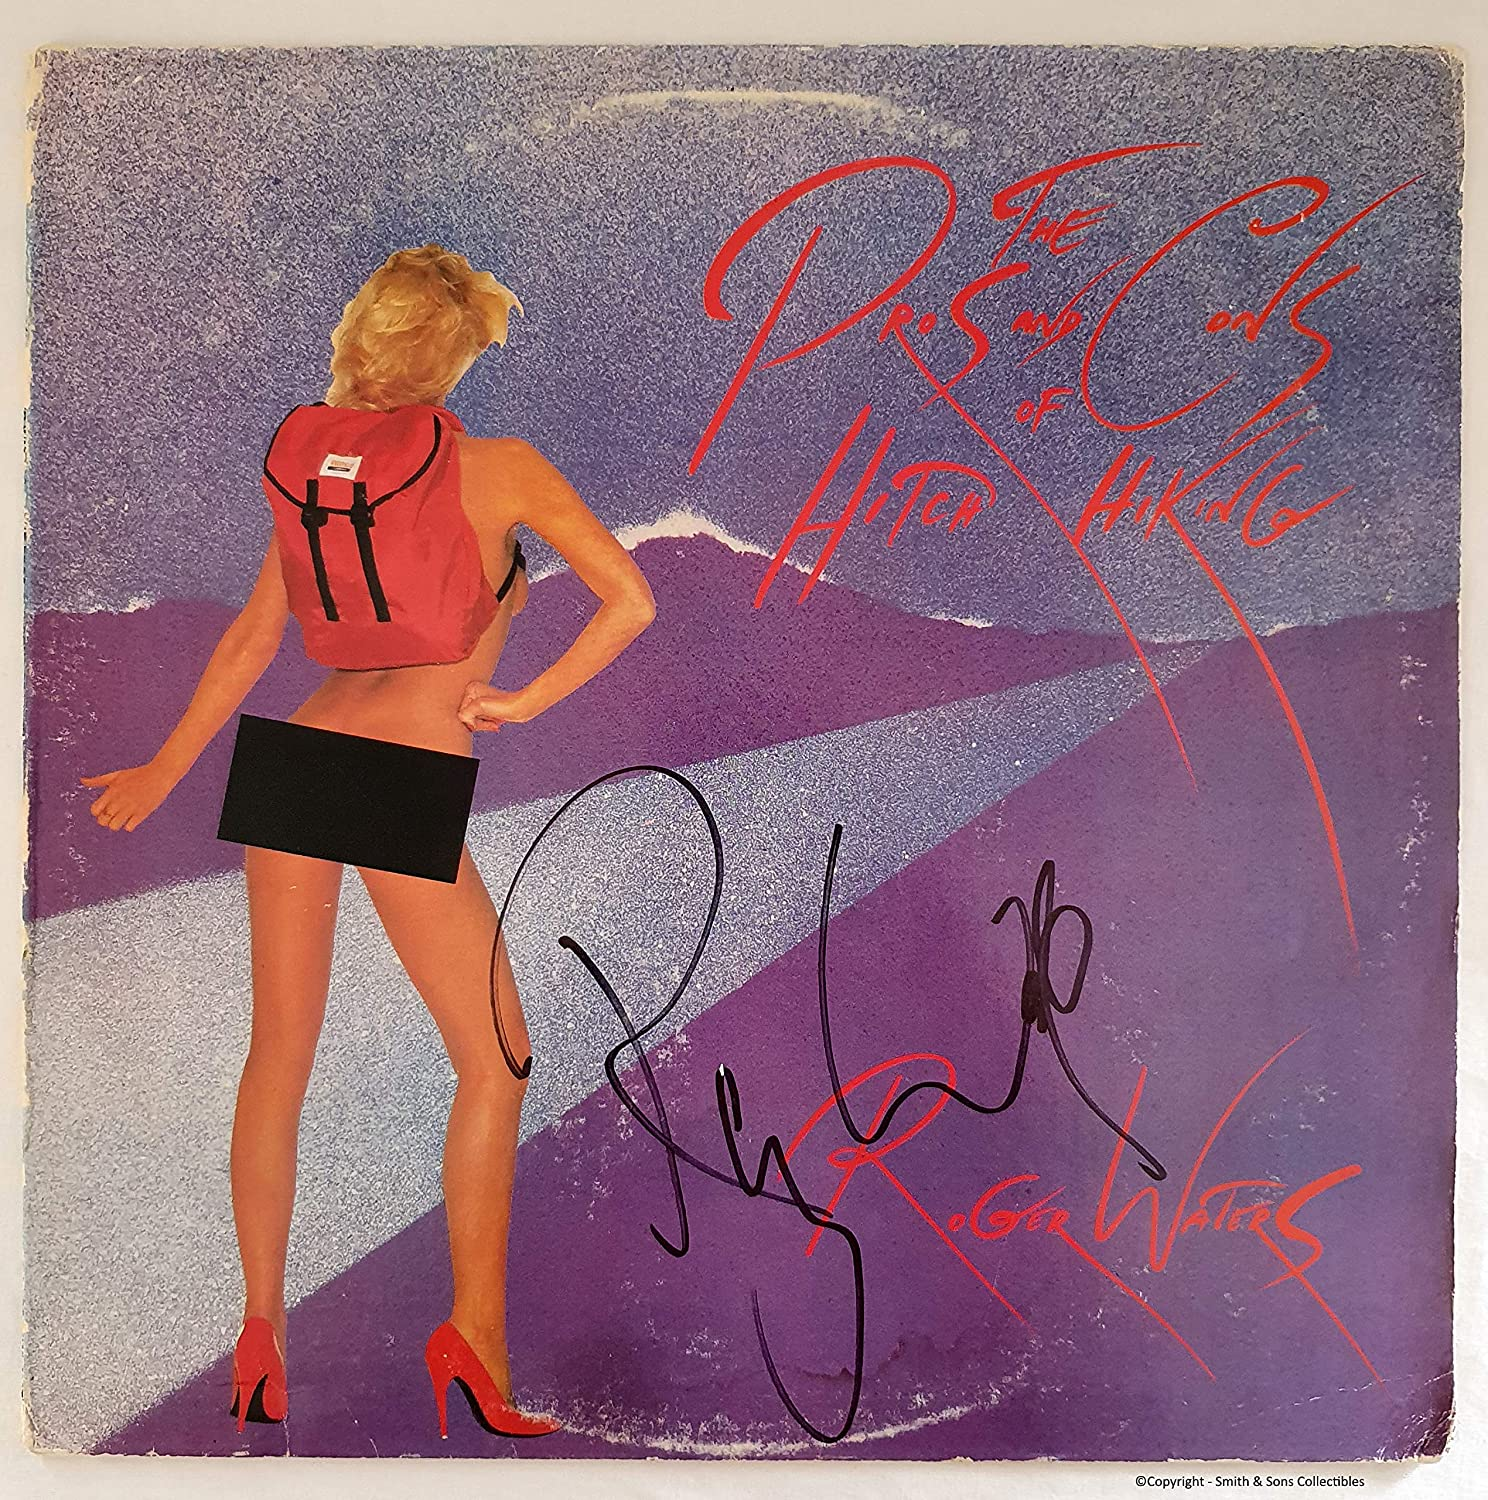 Roger Waters Autographed 'Pros and COA Cons' National products #RW22564 excellence LP